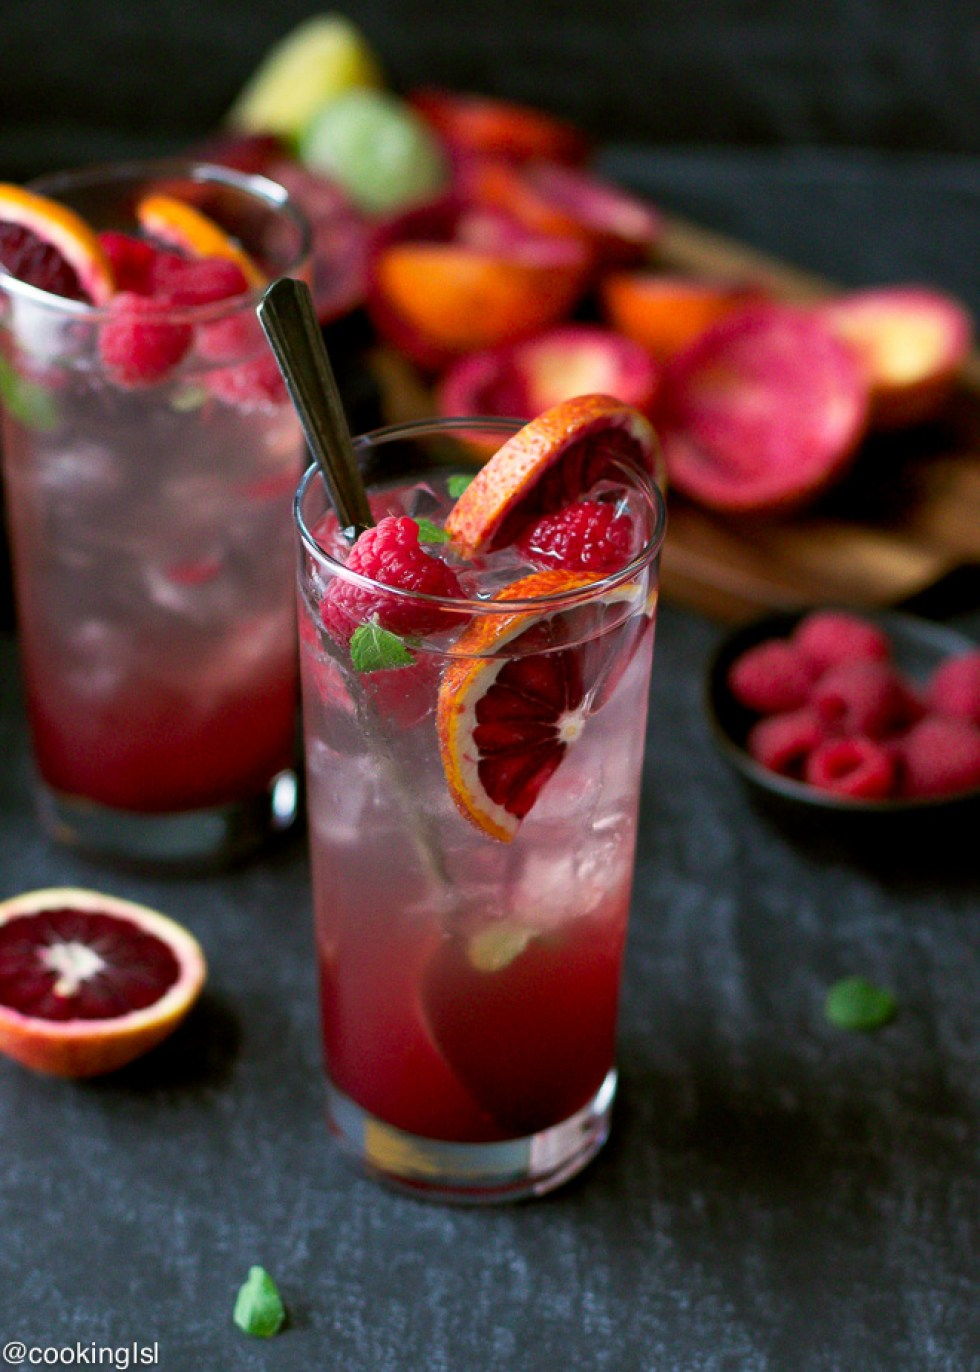 Mojitos are the perfect summer cocktails, and this one comes with blood oranges and raspberry making it tartly sweet and delicious!